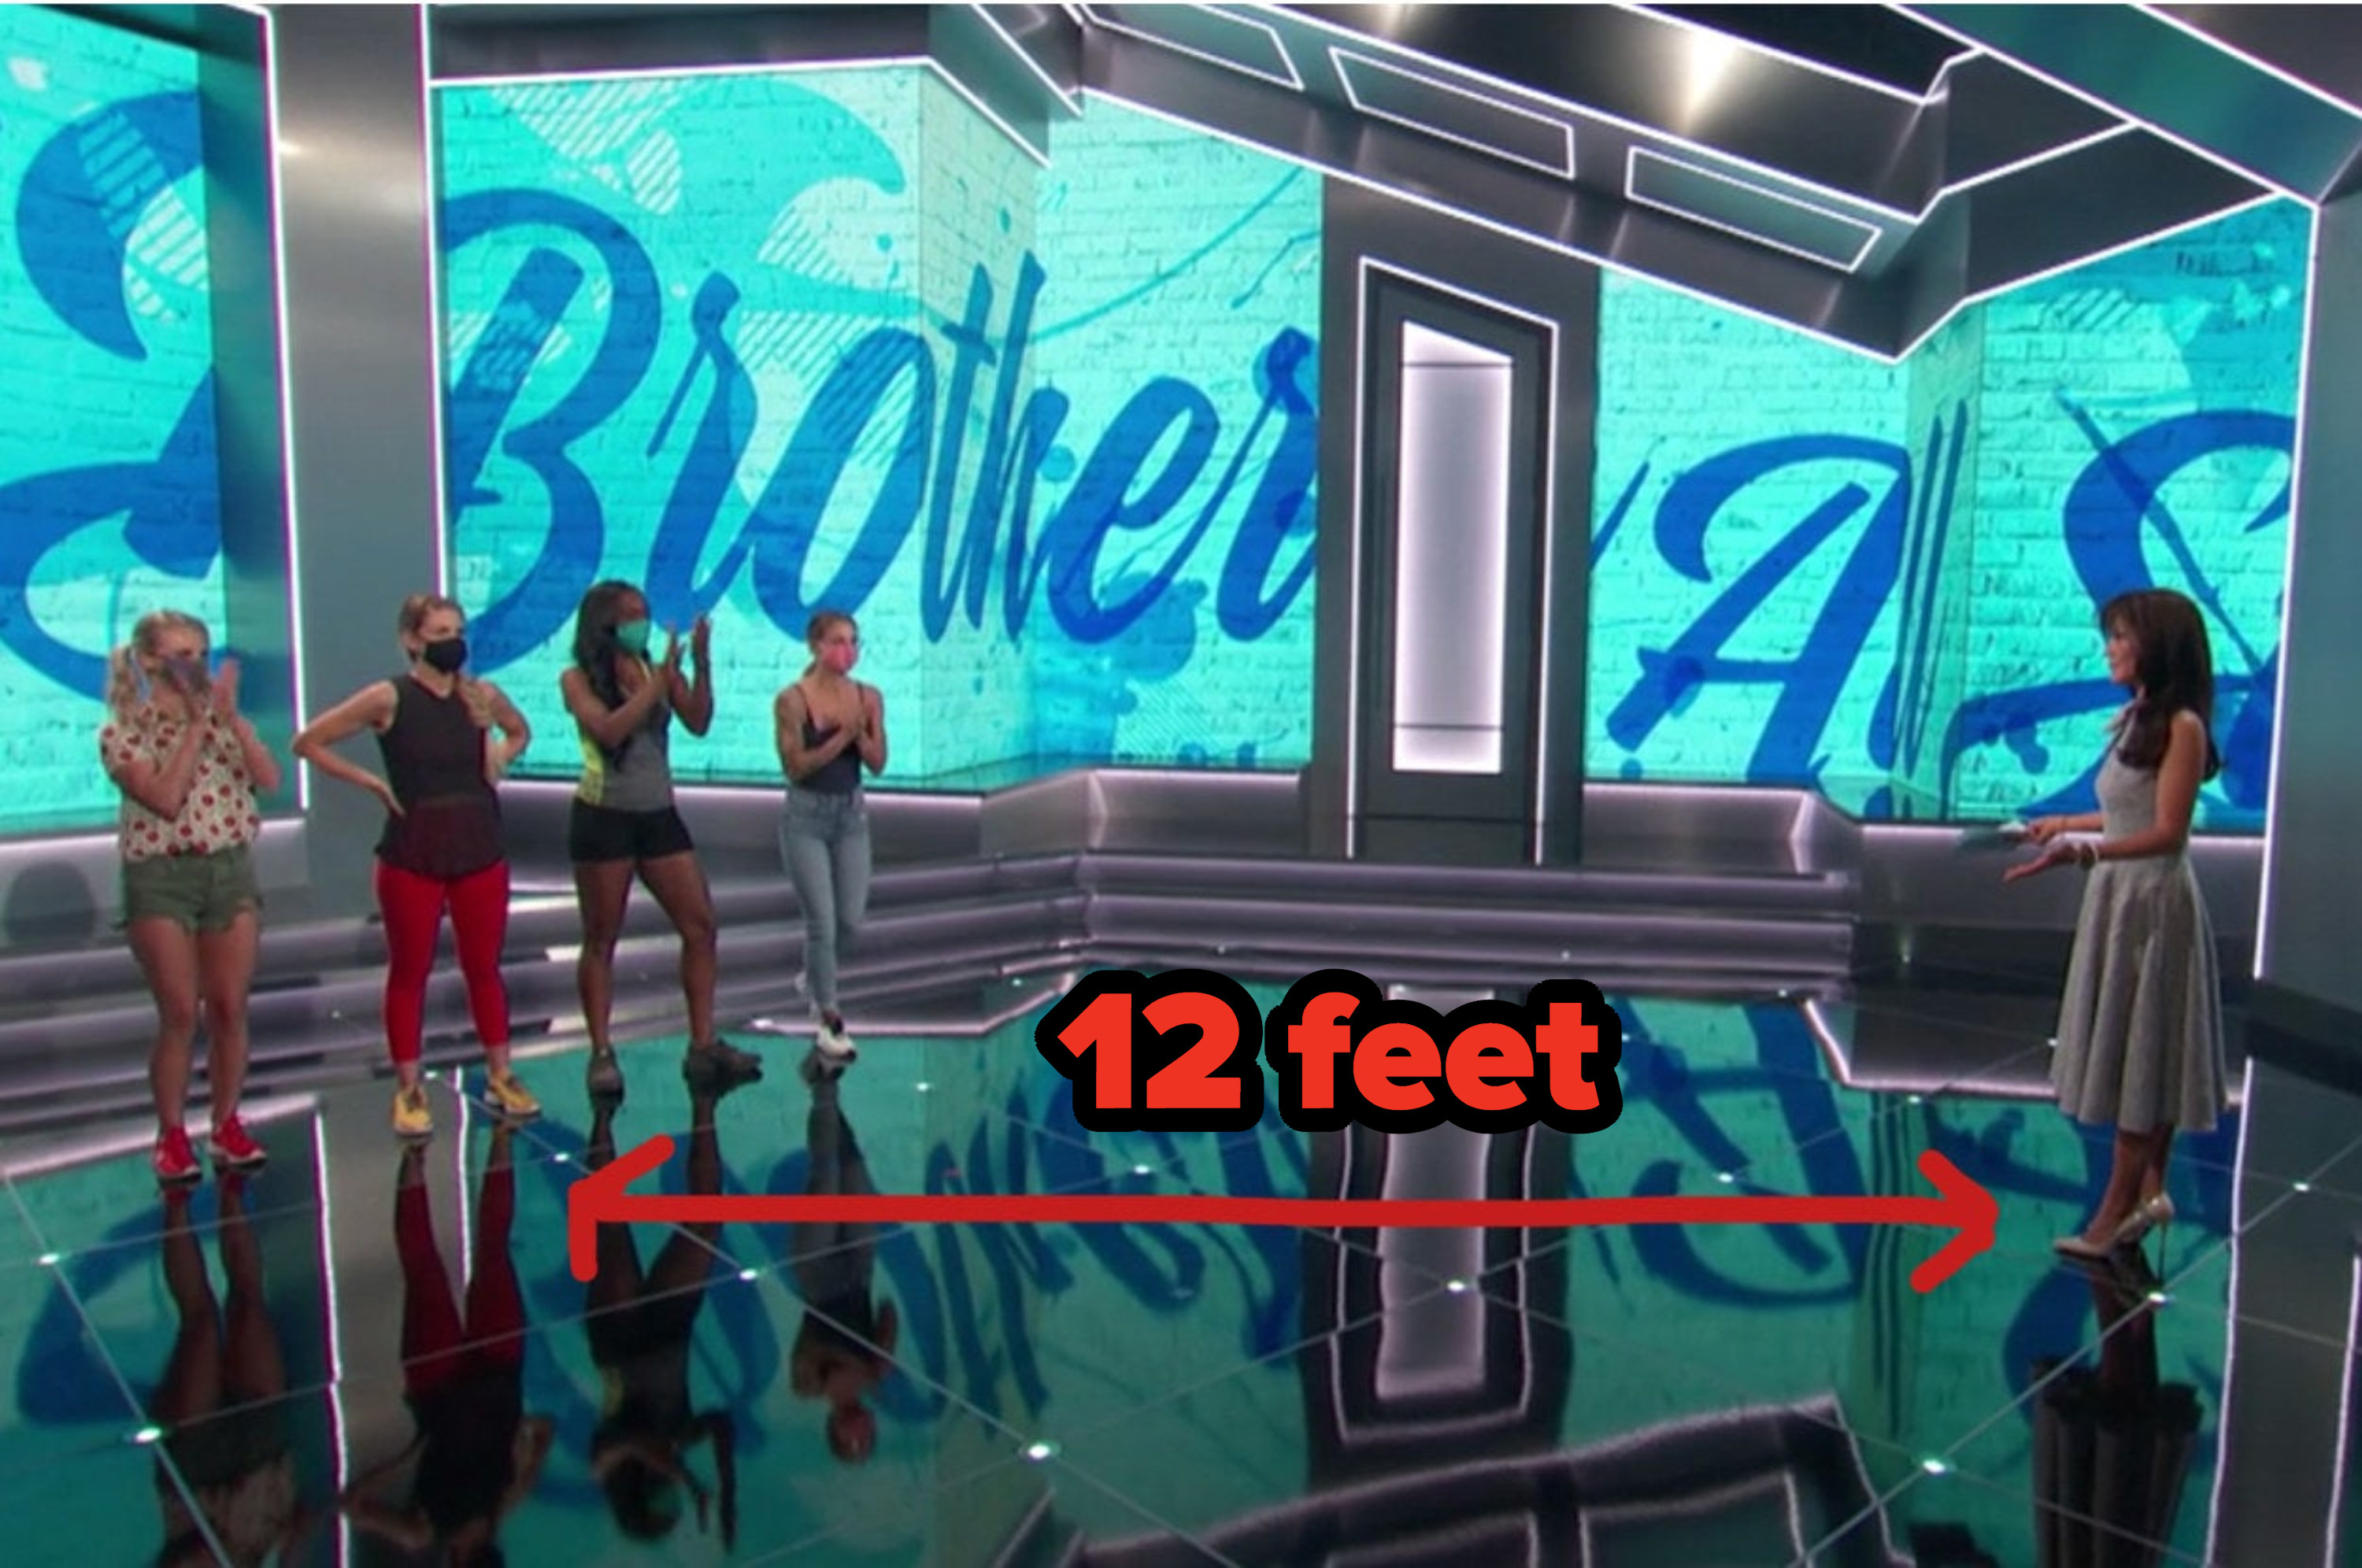 Julie Chen Moonves and 4 houseguests socially distancing 12 feet apart on stage